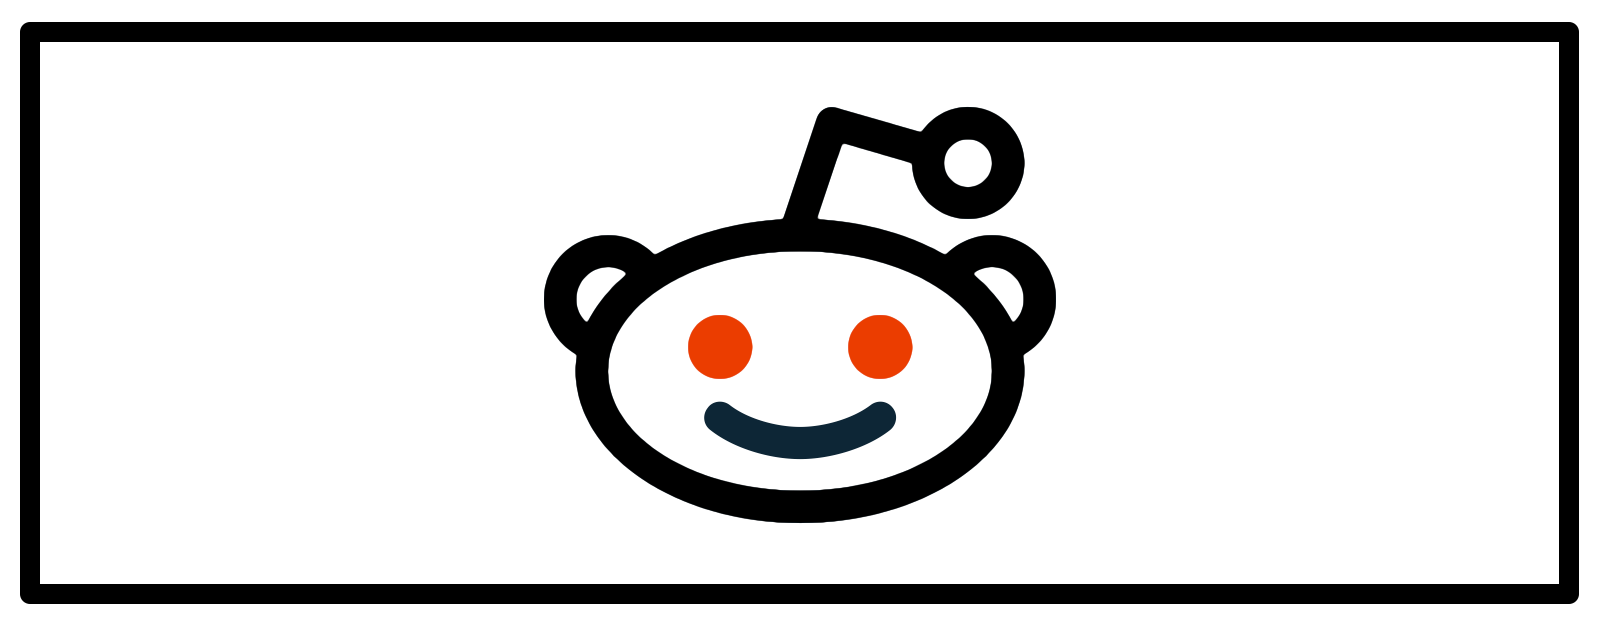 Introducing Your New Favorite Subreddit